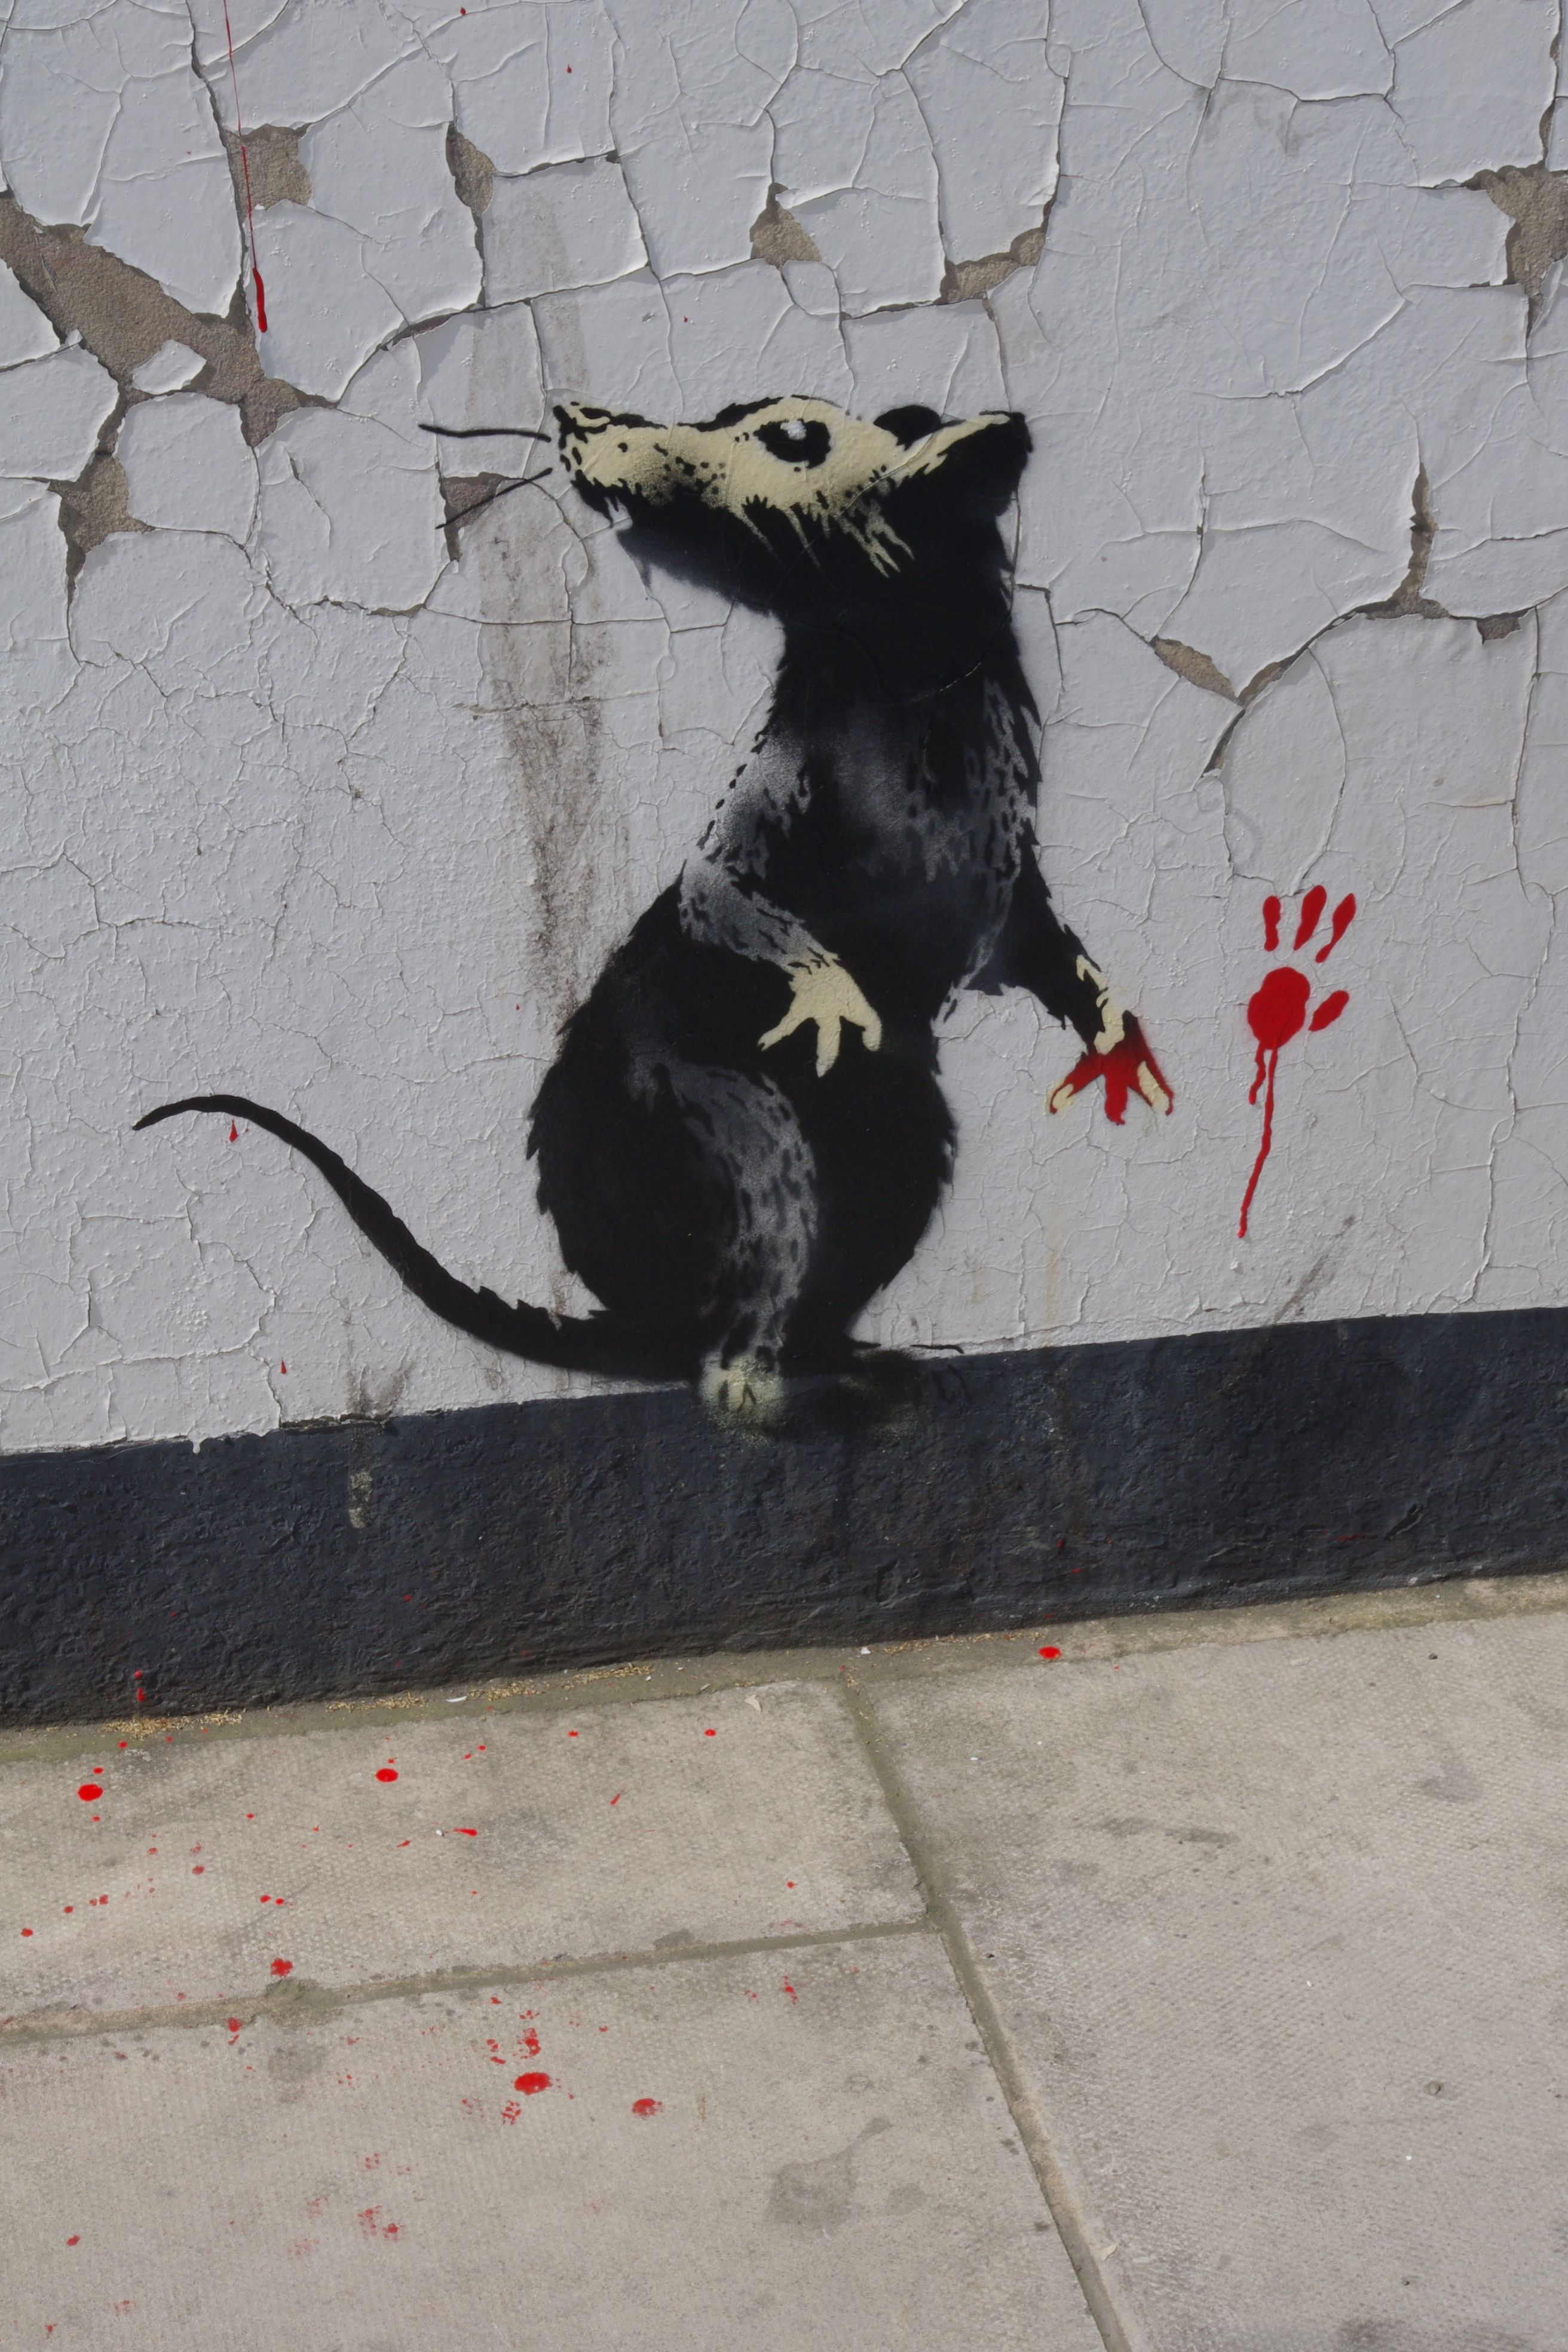 A stencil of a rat with red paint on one of its paws